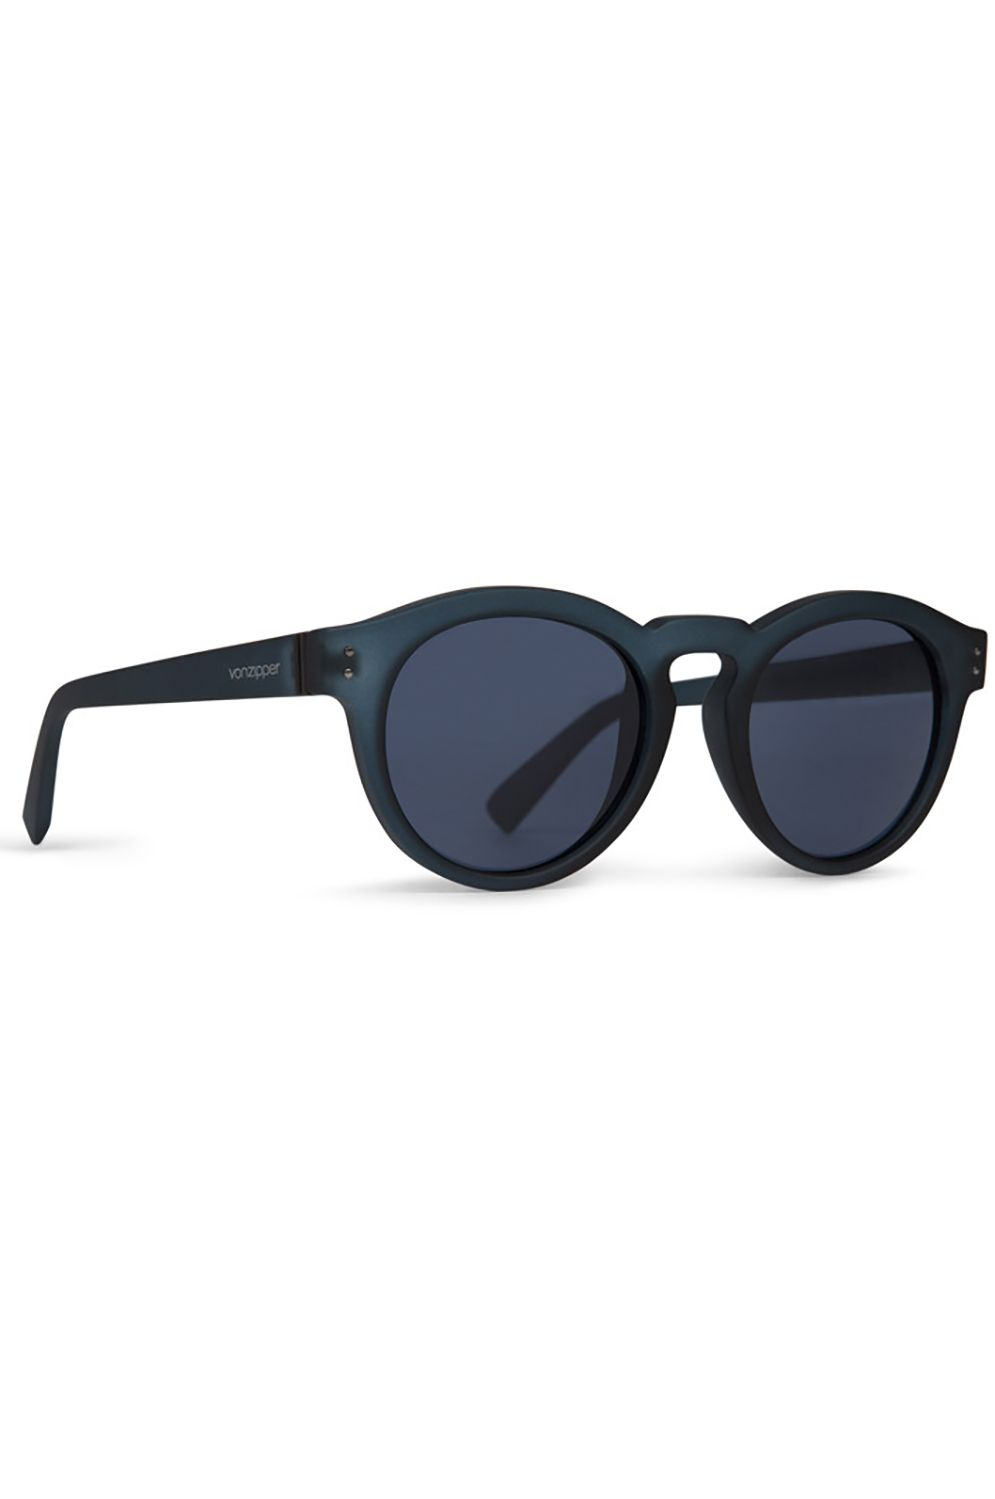 9e165441ec57d Oculos VonZipper DITTY Navy Satin   Grey-Blue